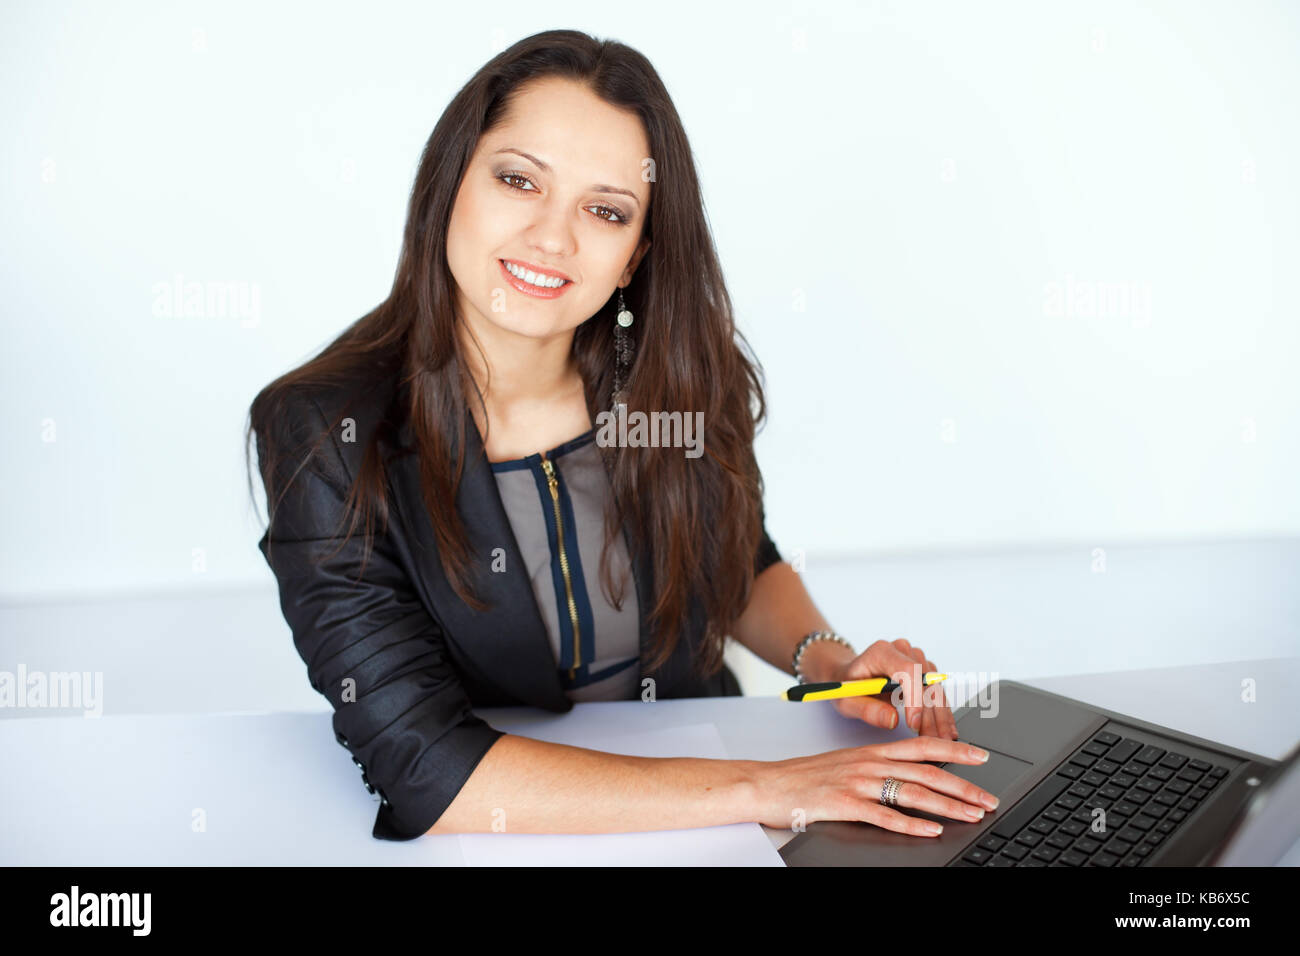 Portrait of beautiful young smiling brunette business woman working on a laptop in office - Stock Image